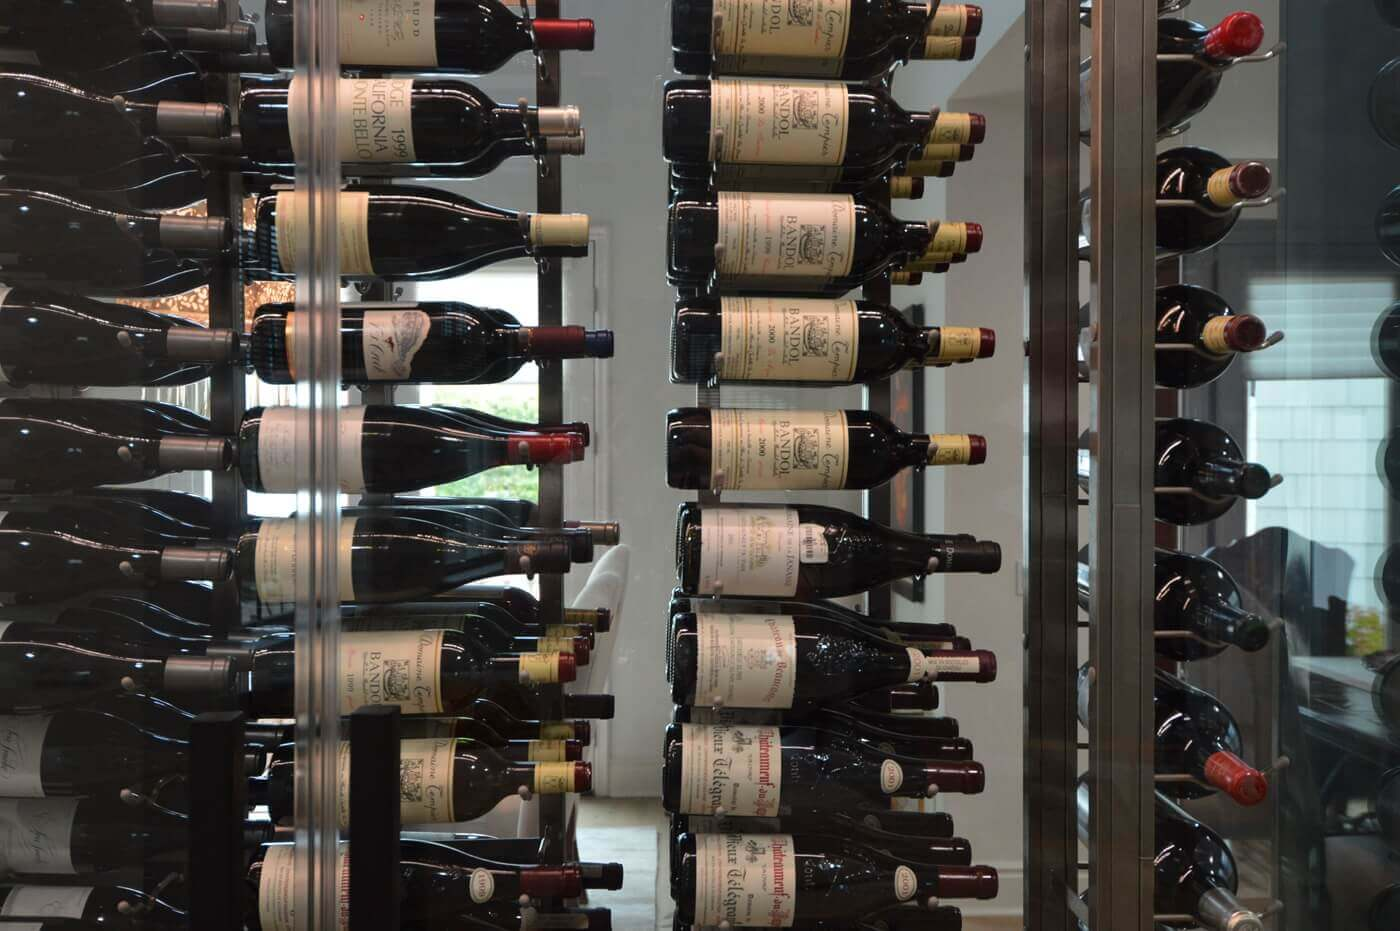 The team used gaskets to further enhance the sealing capability of the wine cellar. It has lessened the likelihood of leakage inside the wine cellar which had optimized the performance of the cooling system.